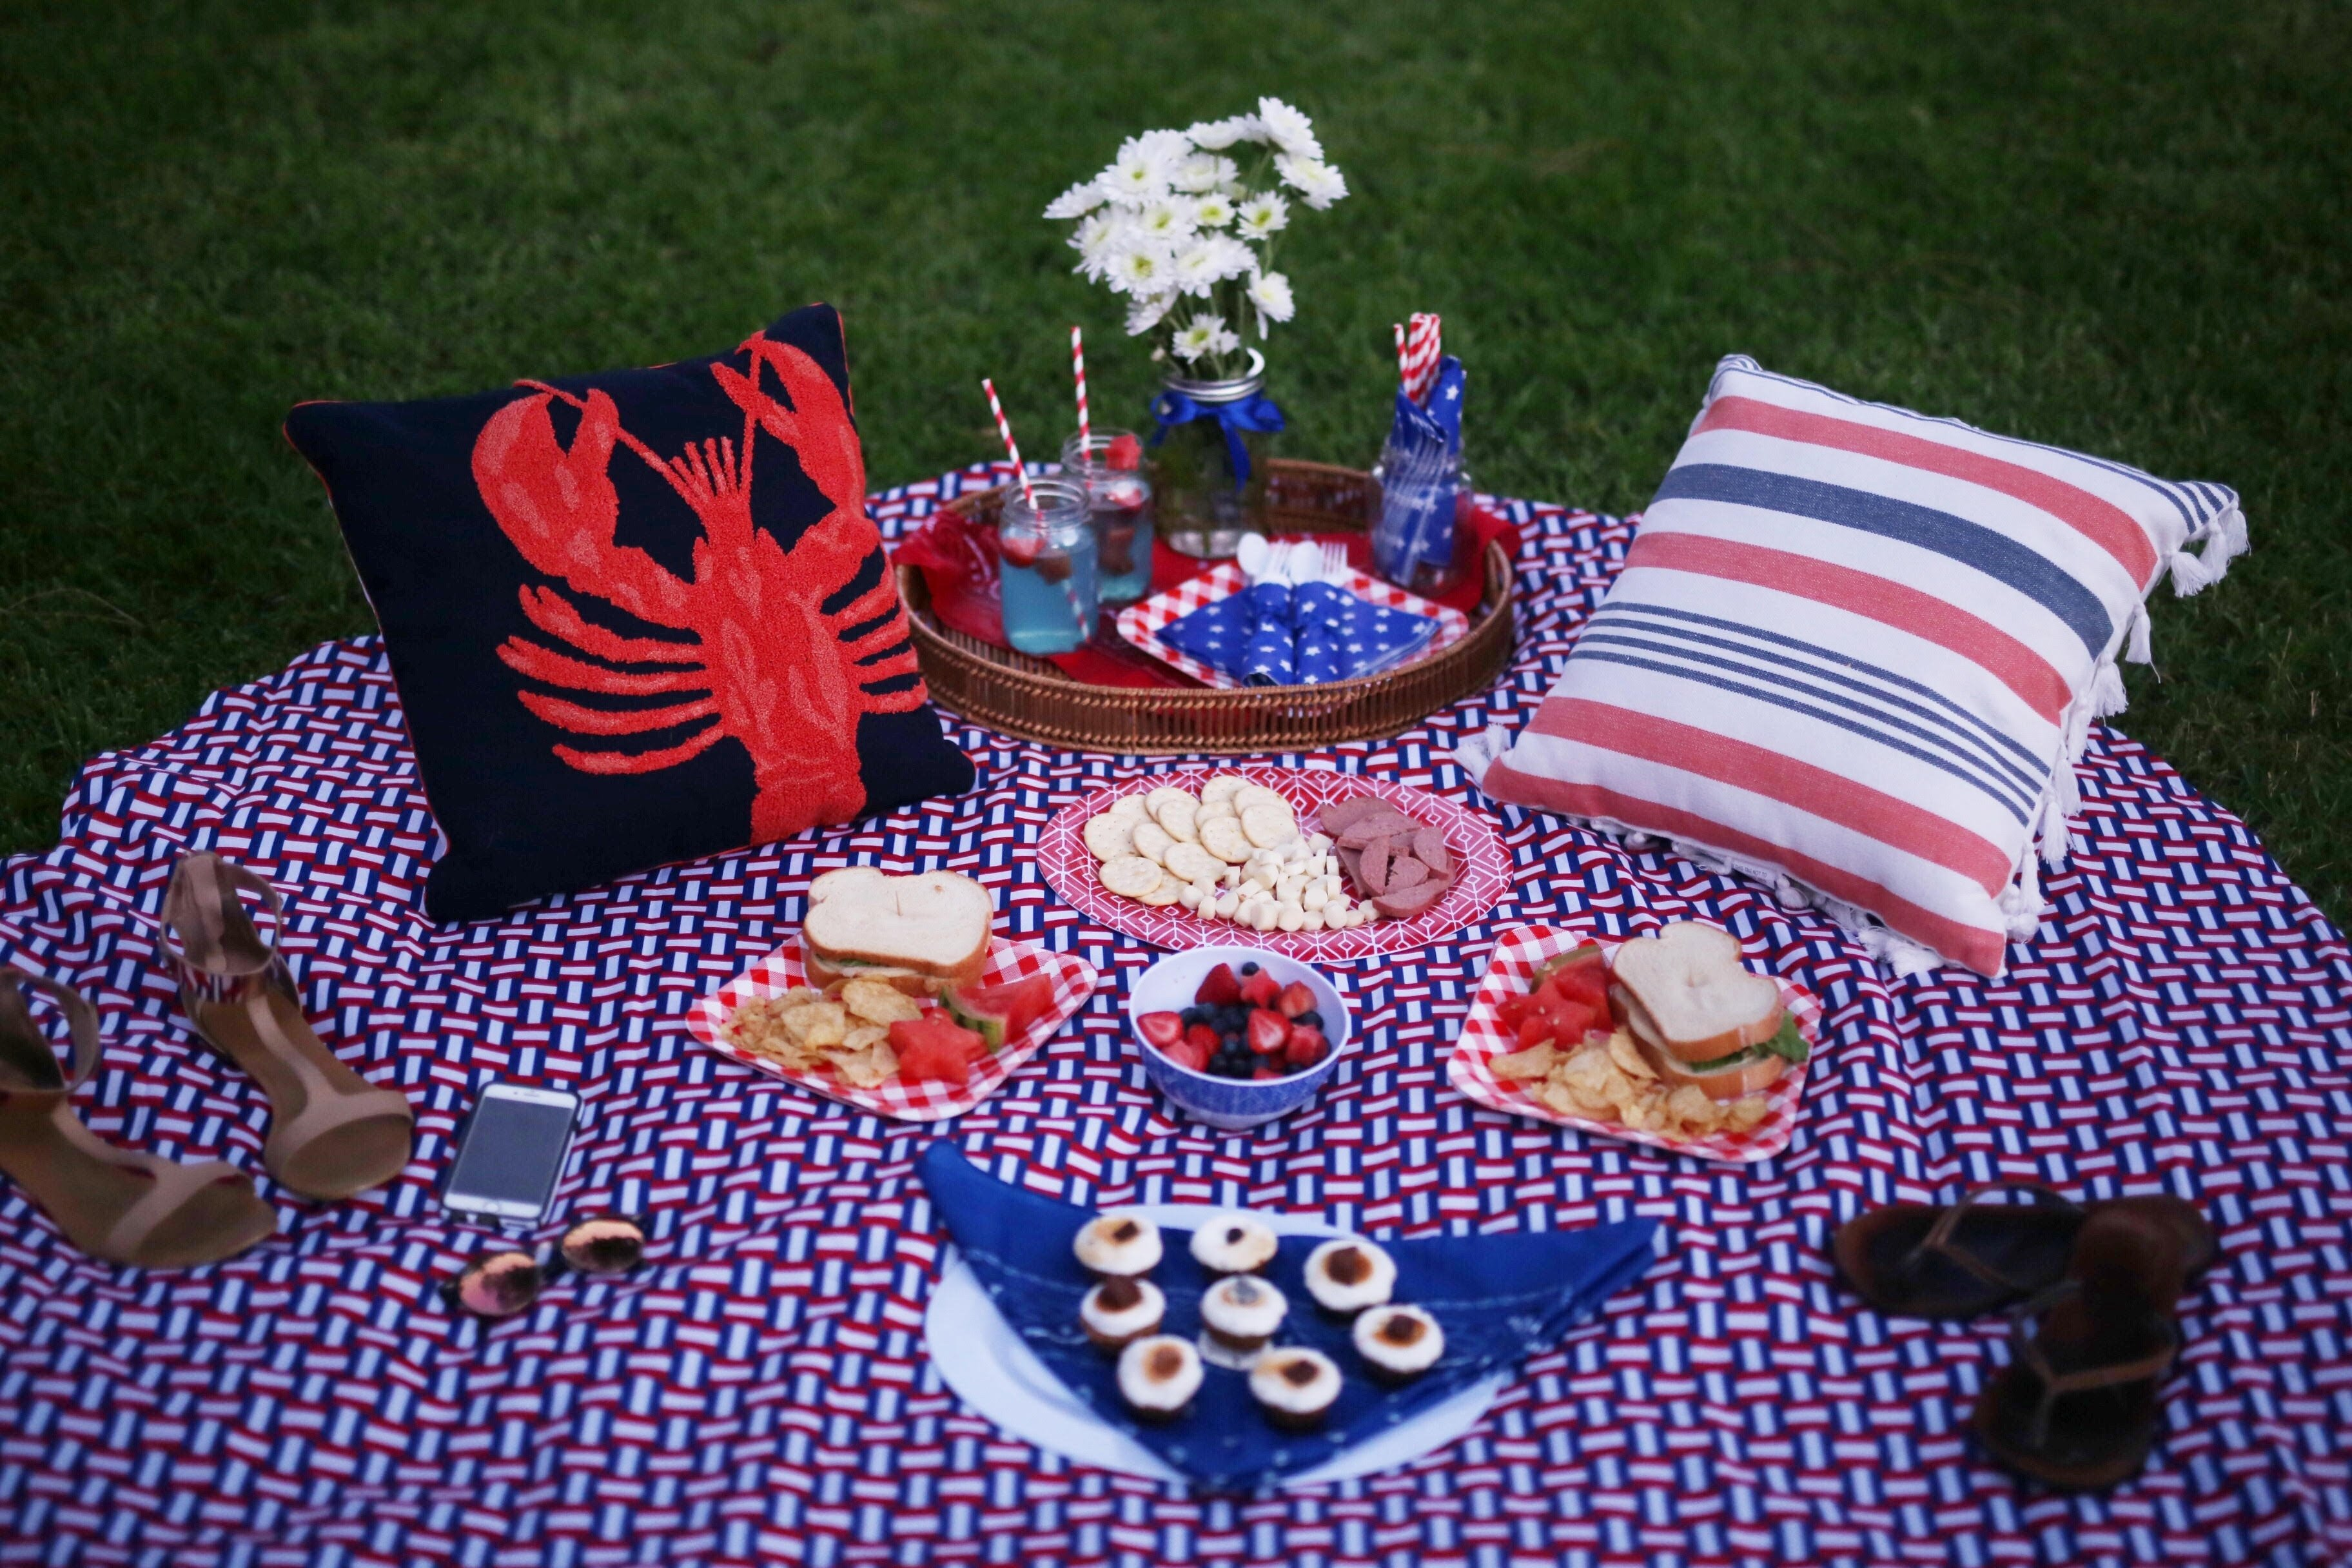 10 Perfect Fourth Of July Picnic Ideas fourth of july diy picnic ideas 2016 style me samira2 style me 2021